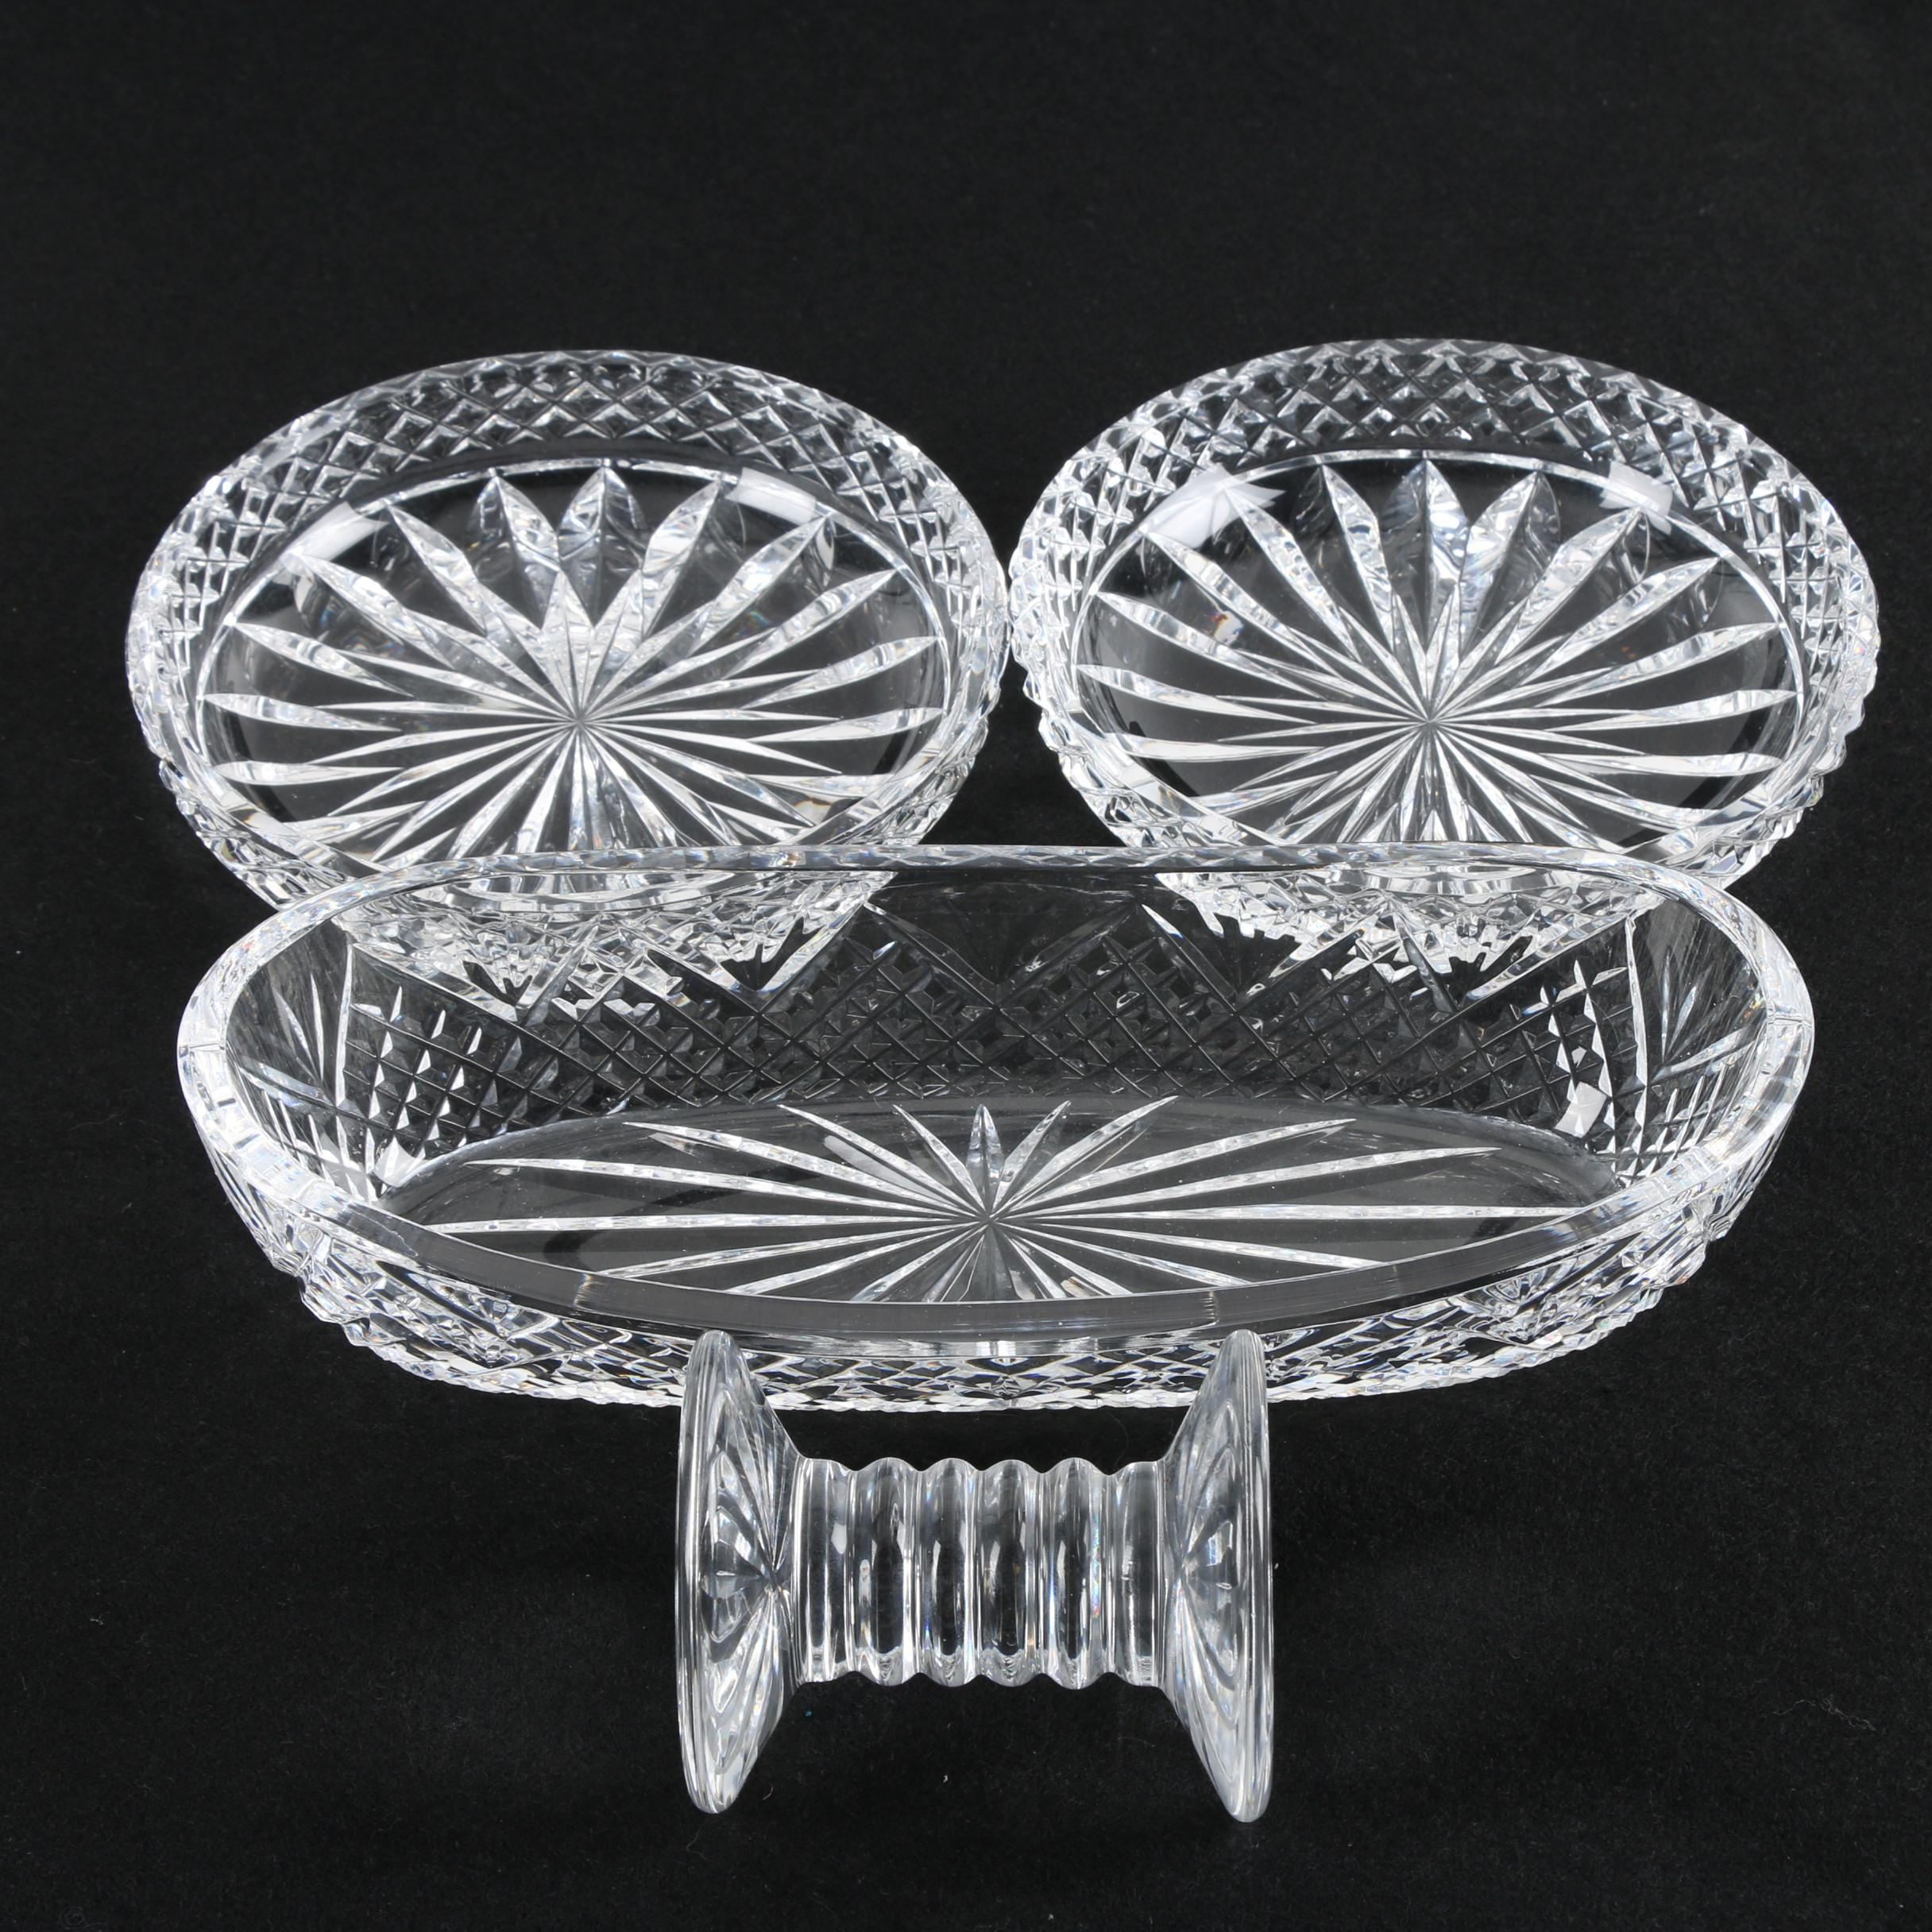 Crystal Bowls with a Celery Dish and Knife Rest featuring Waterford Crystal